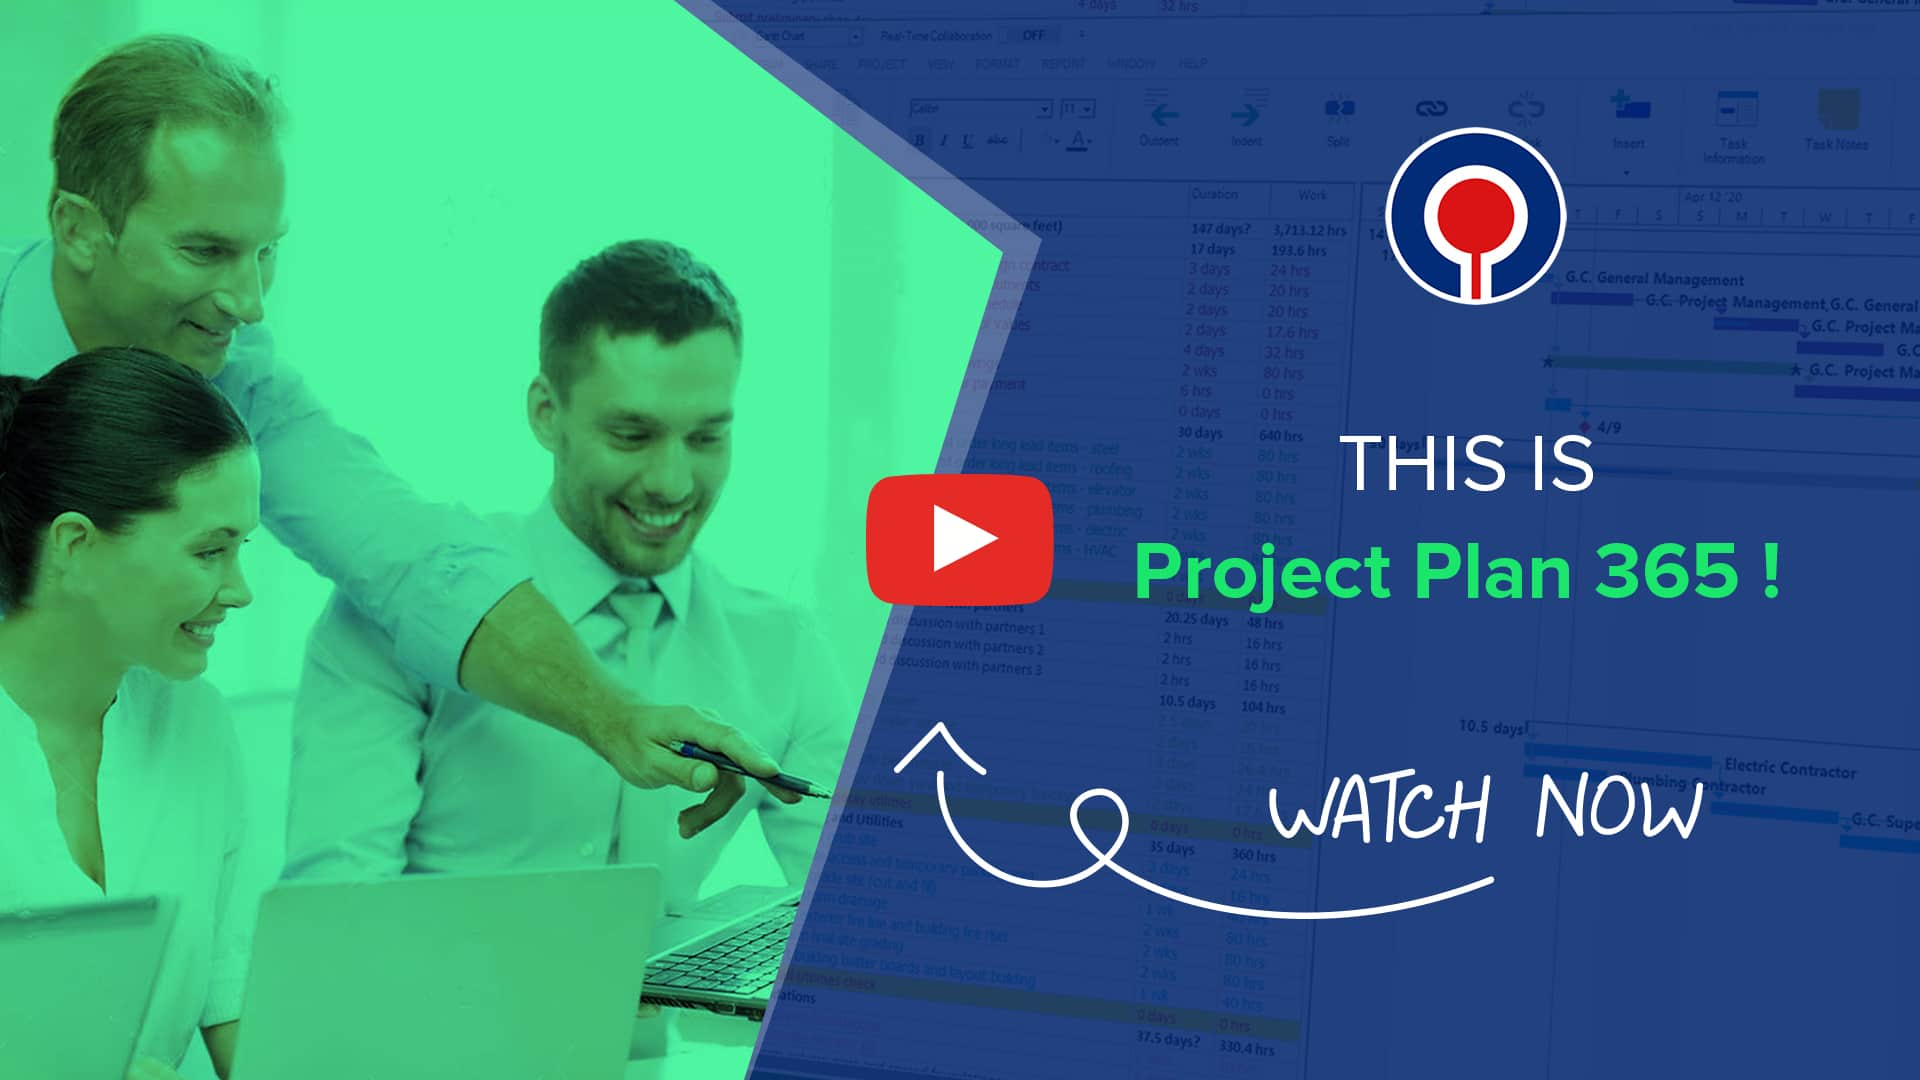 This is Project Plan 365